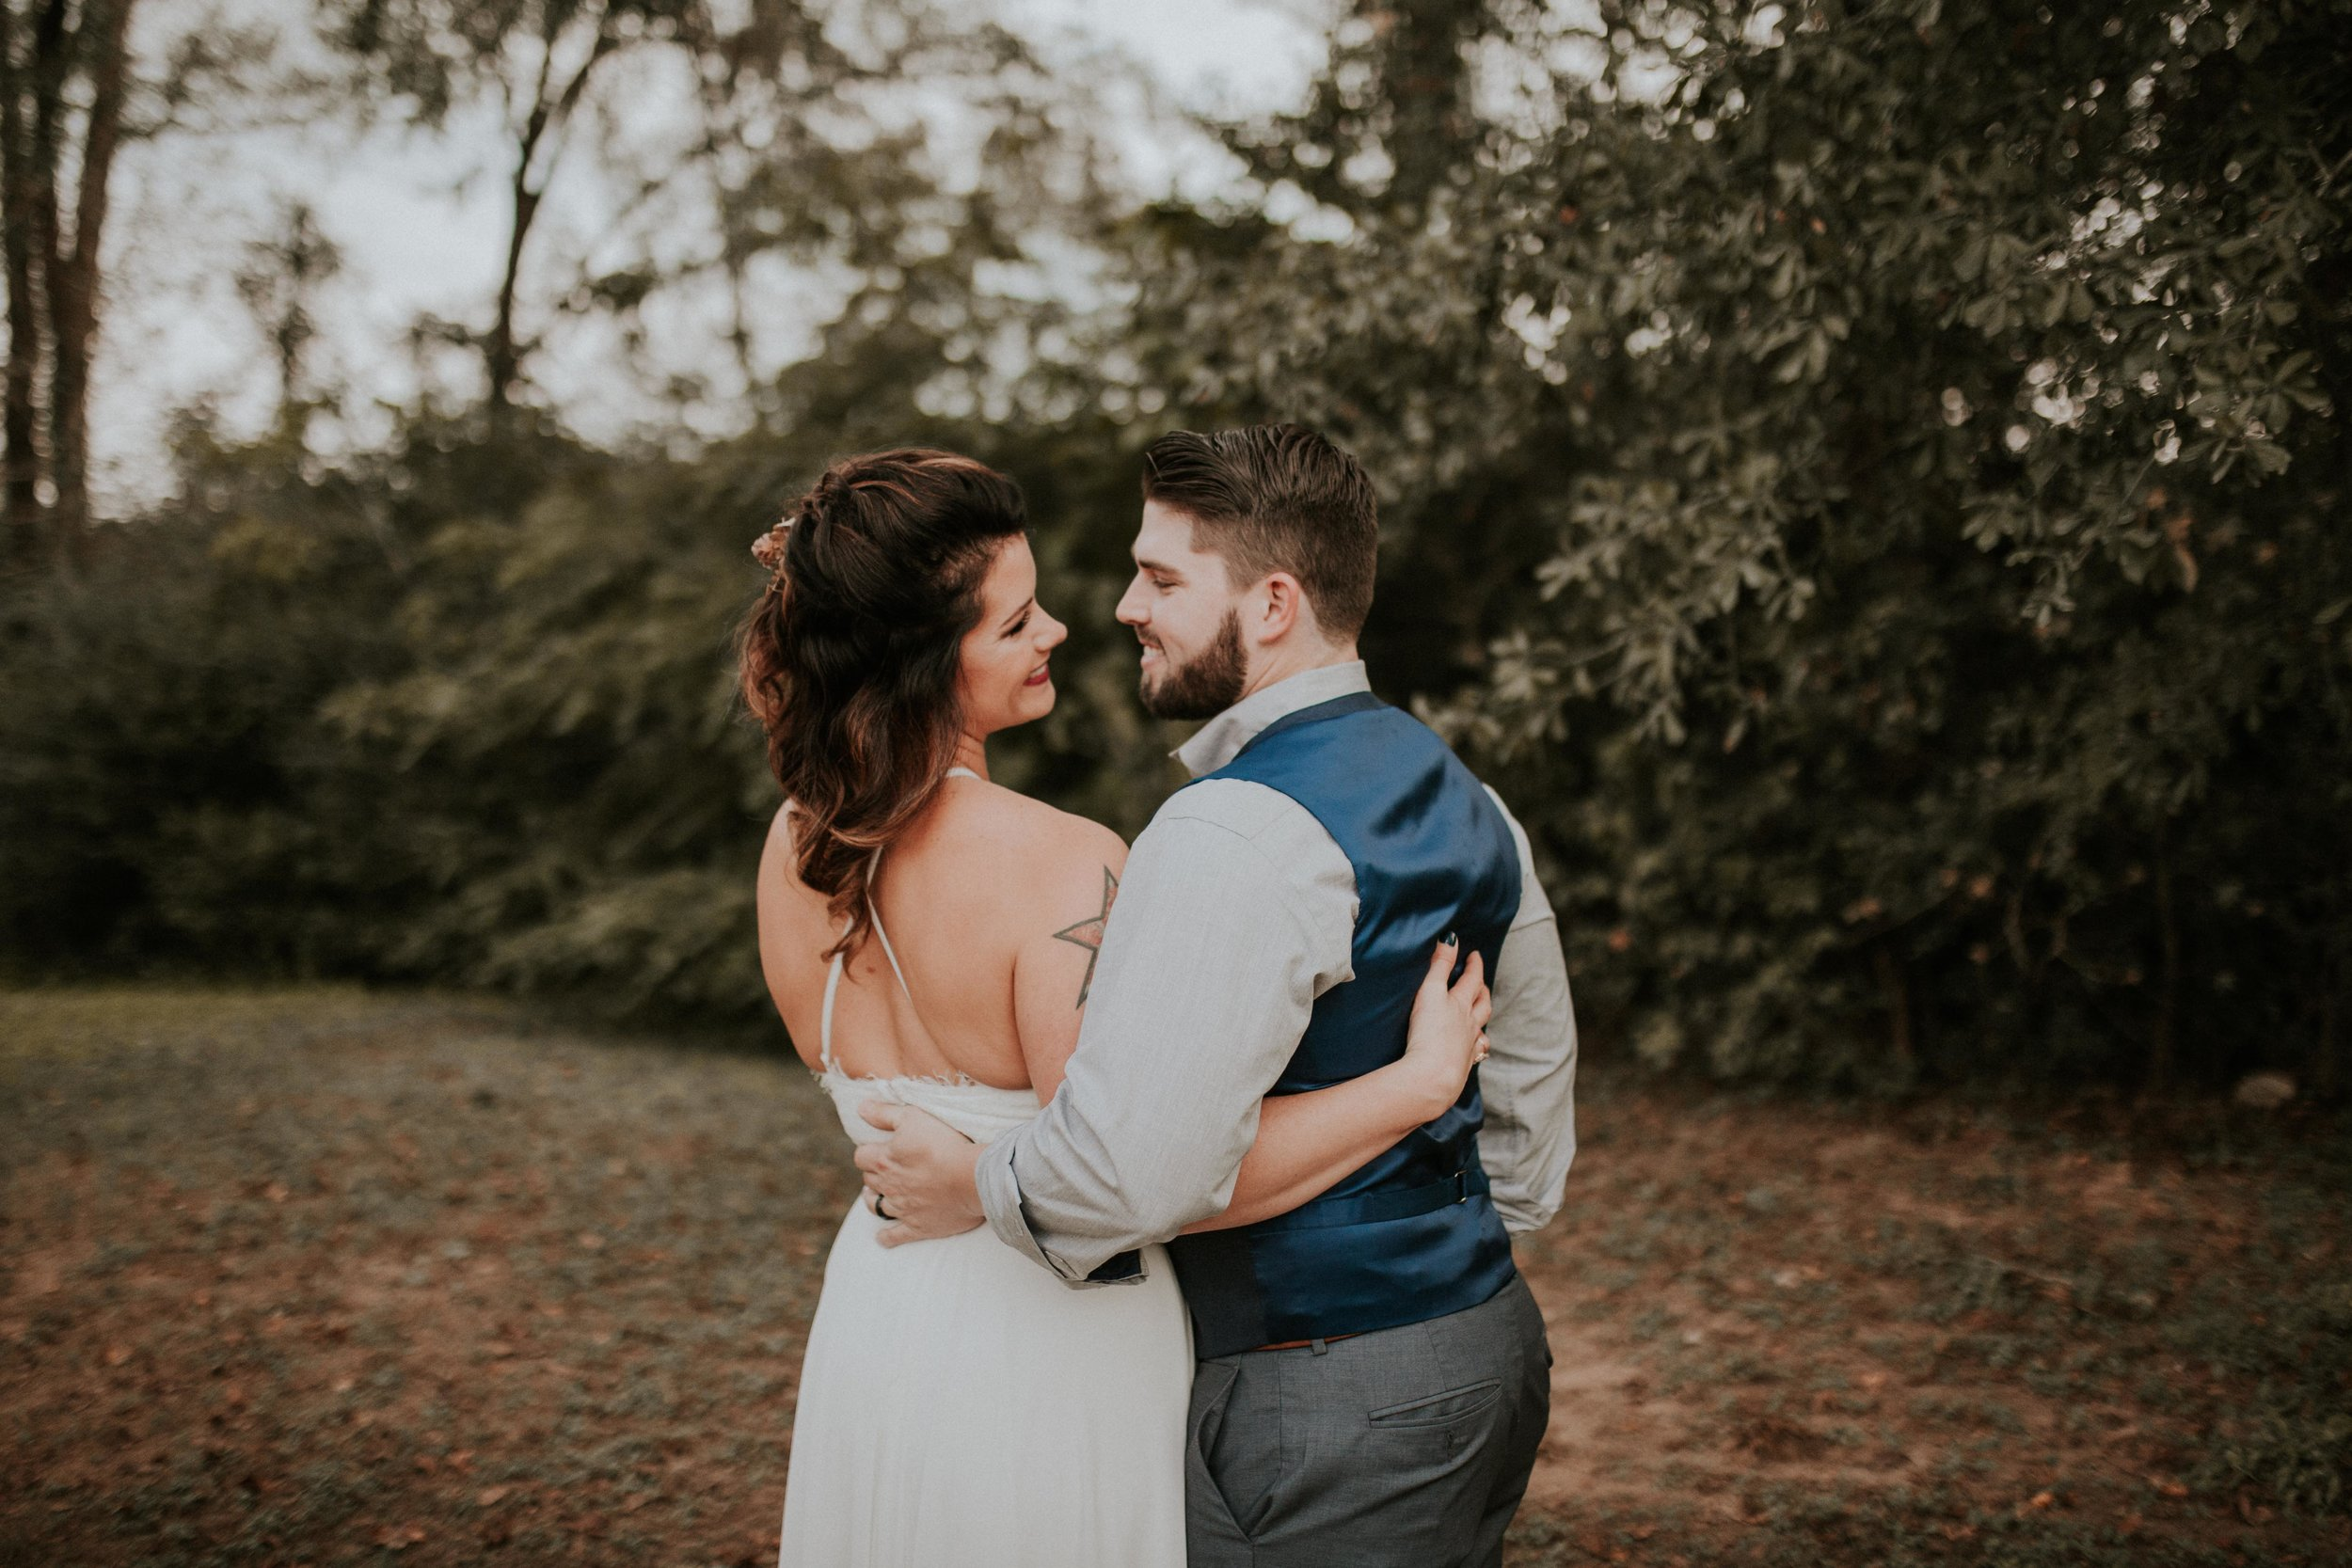 Vow Renewal in Magnolia Texas - Madeleine Frost Wedding Photographer - Sized for Blog-38.jpg